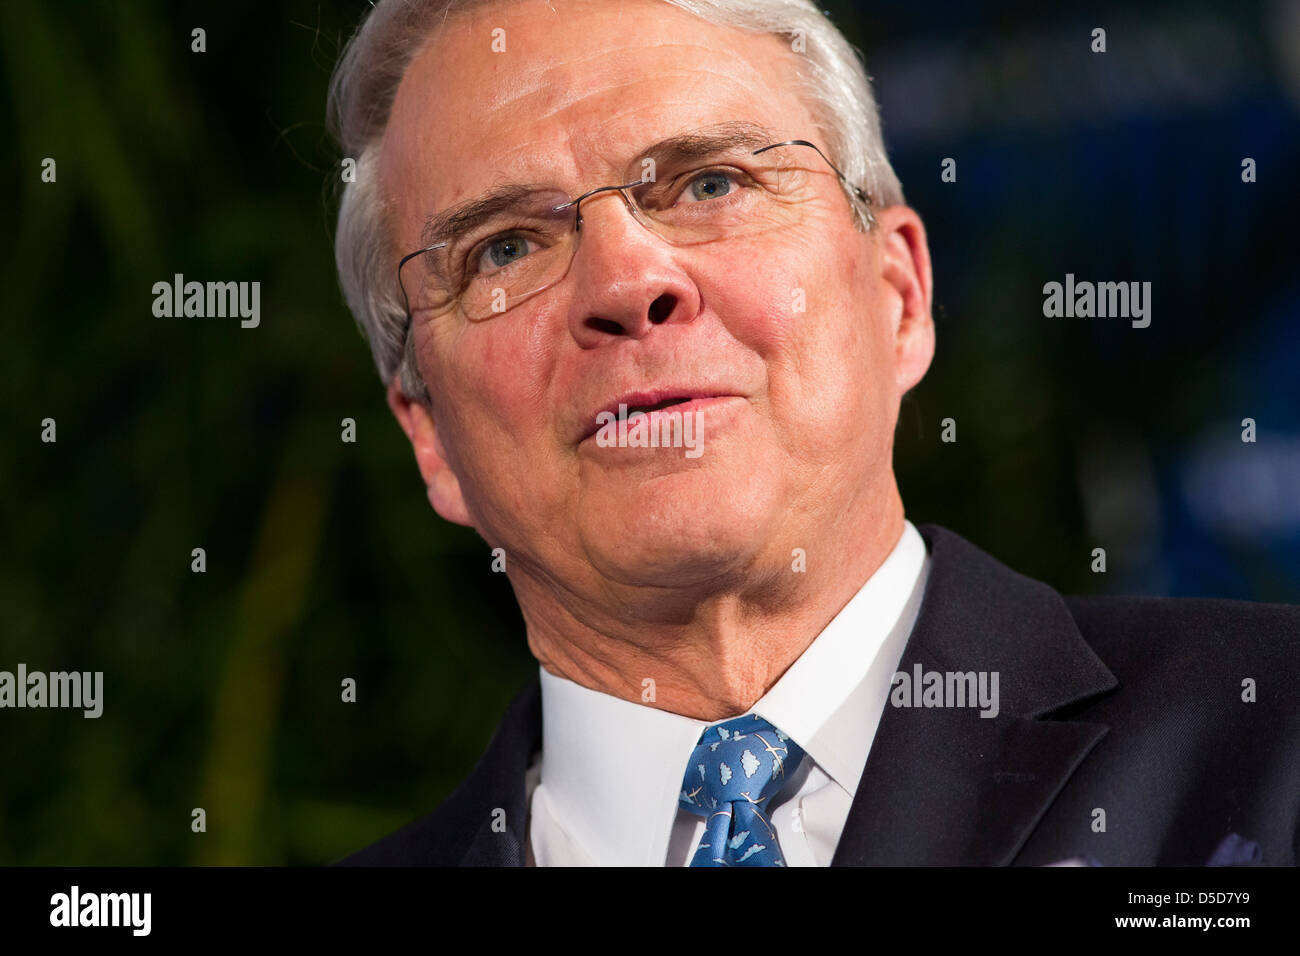 T. Allan McArtor, Chairman of Airbus Americas. - Stock Image